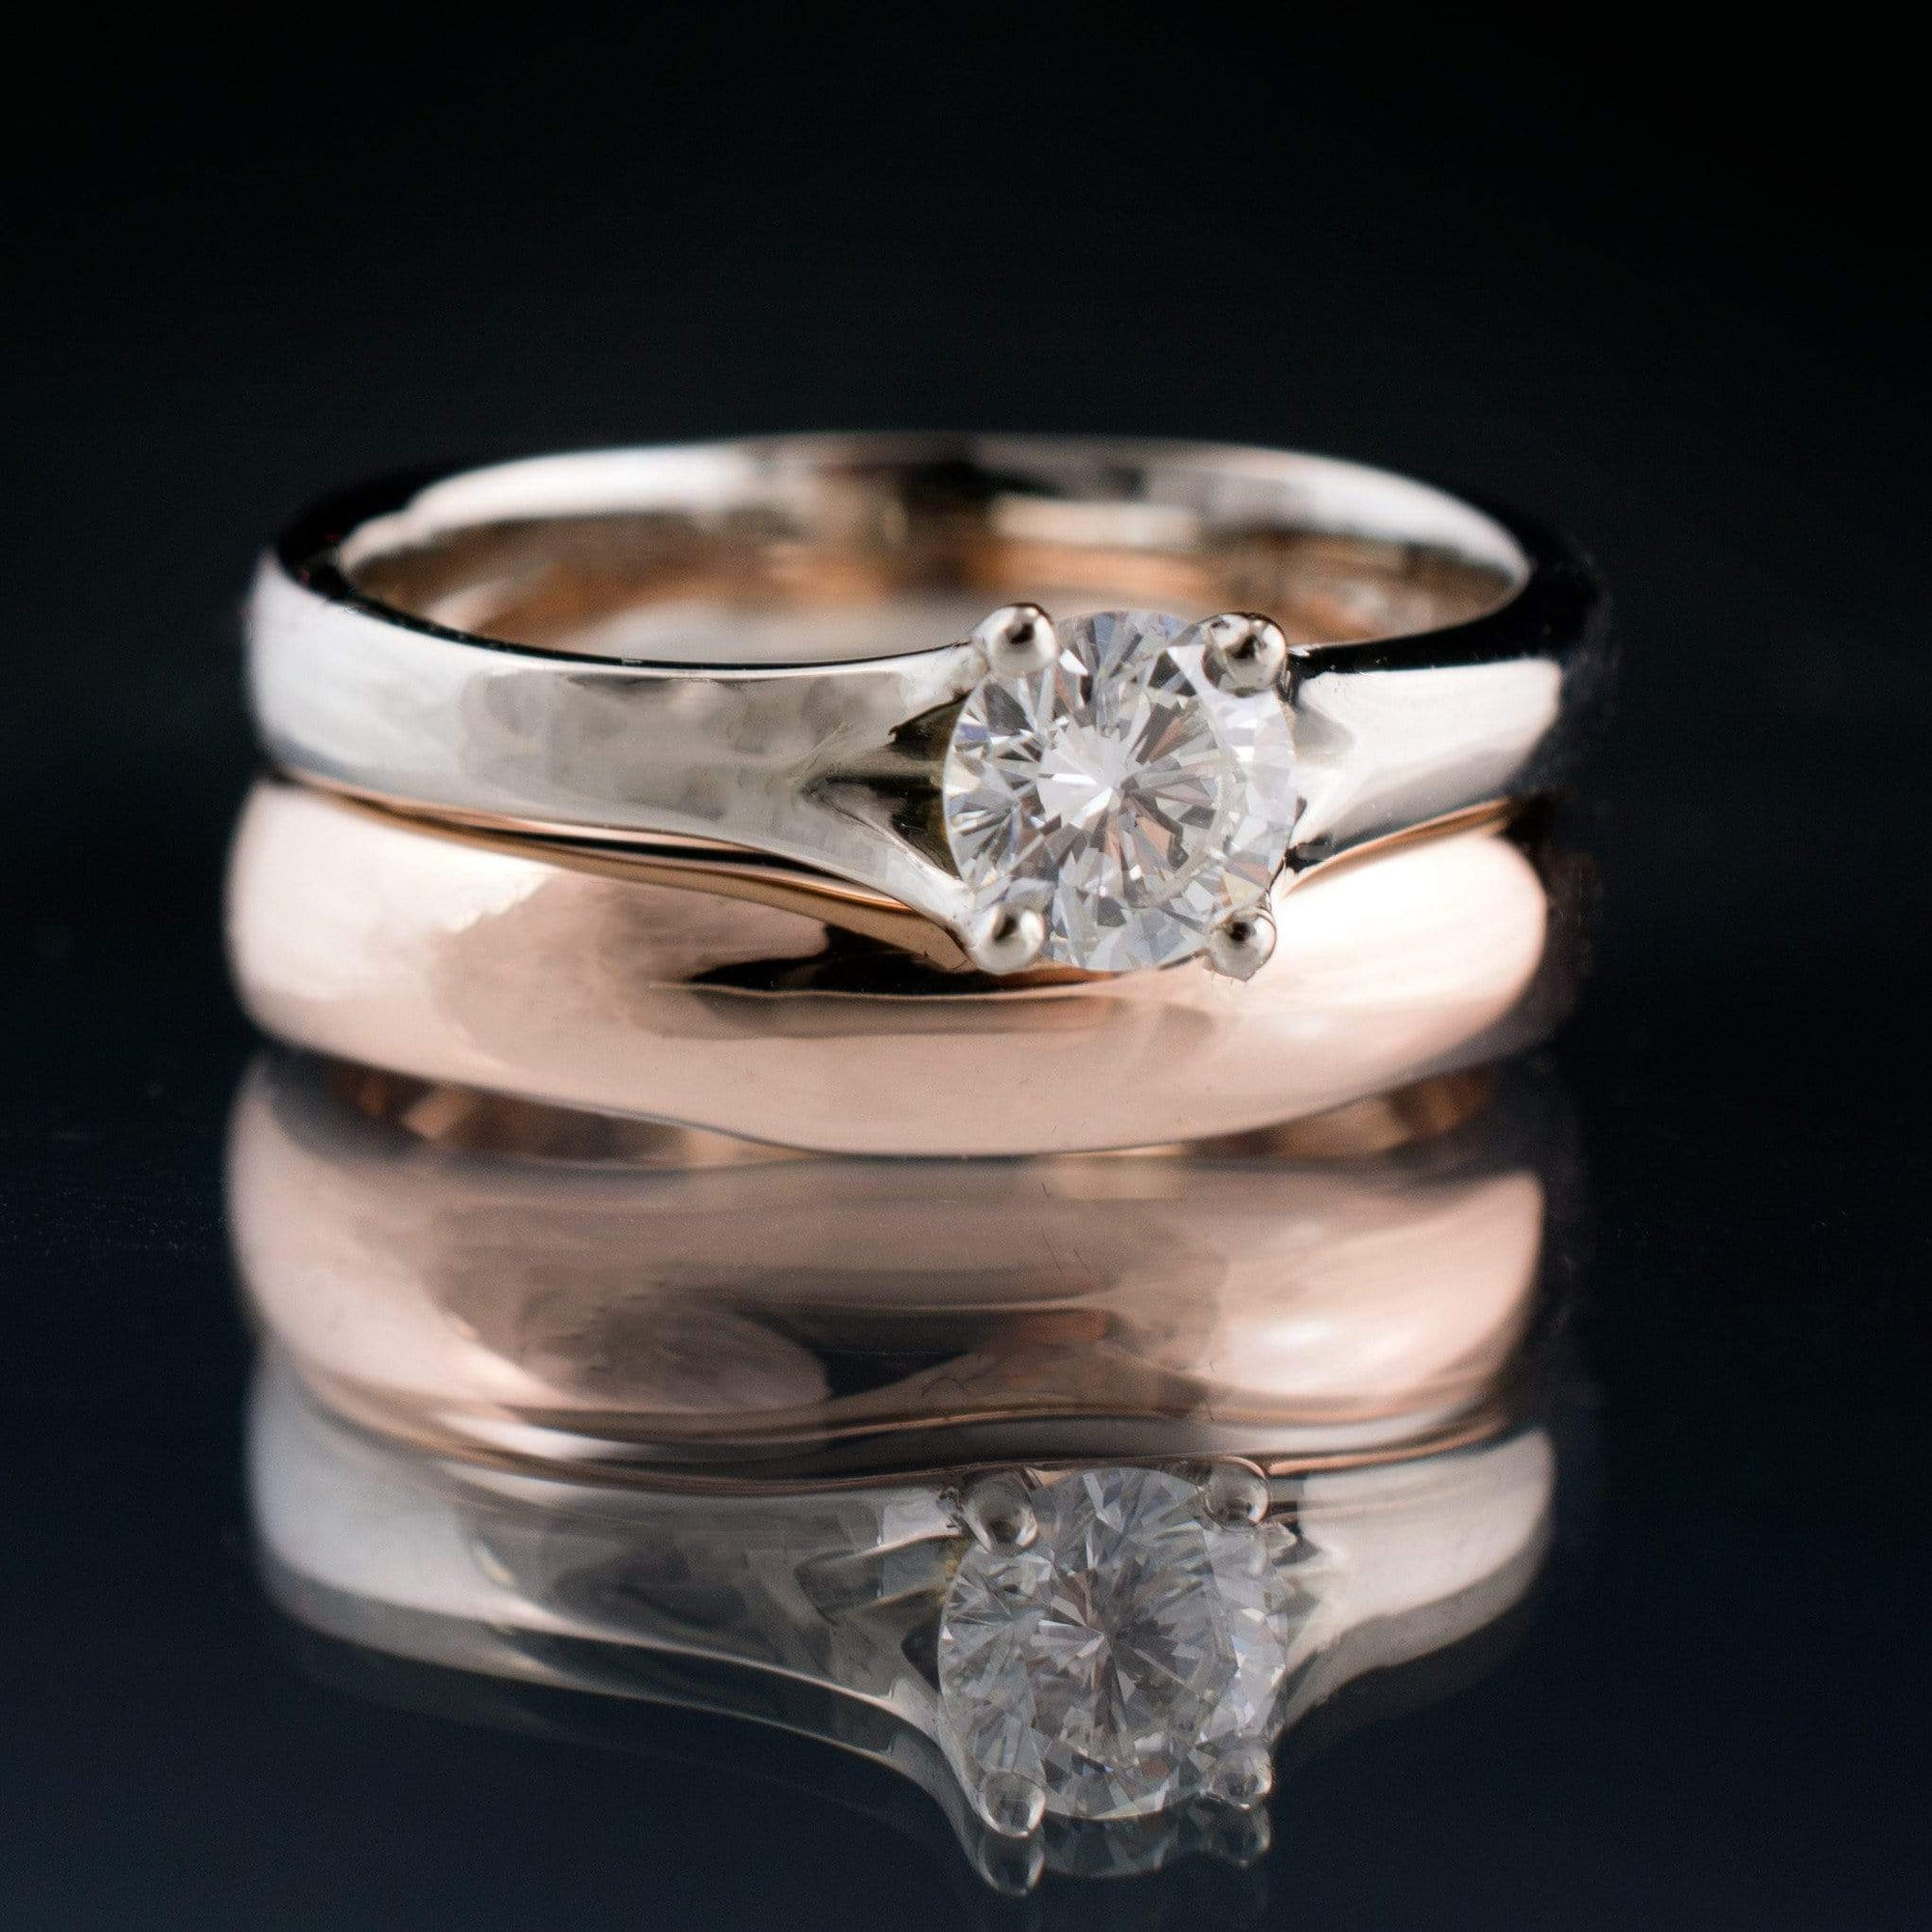 Bridal Set Diamond Prong Engagement Ring and Rose Gold Wedding Band - by Nodeform